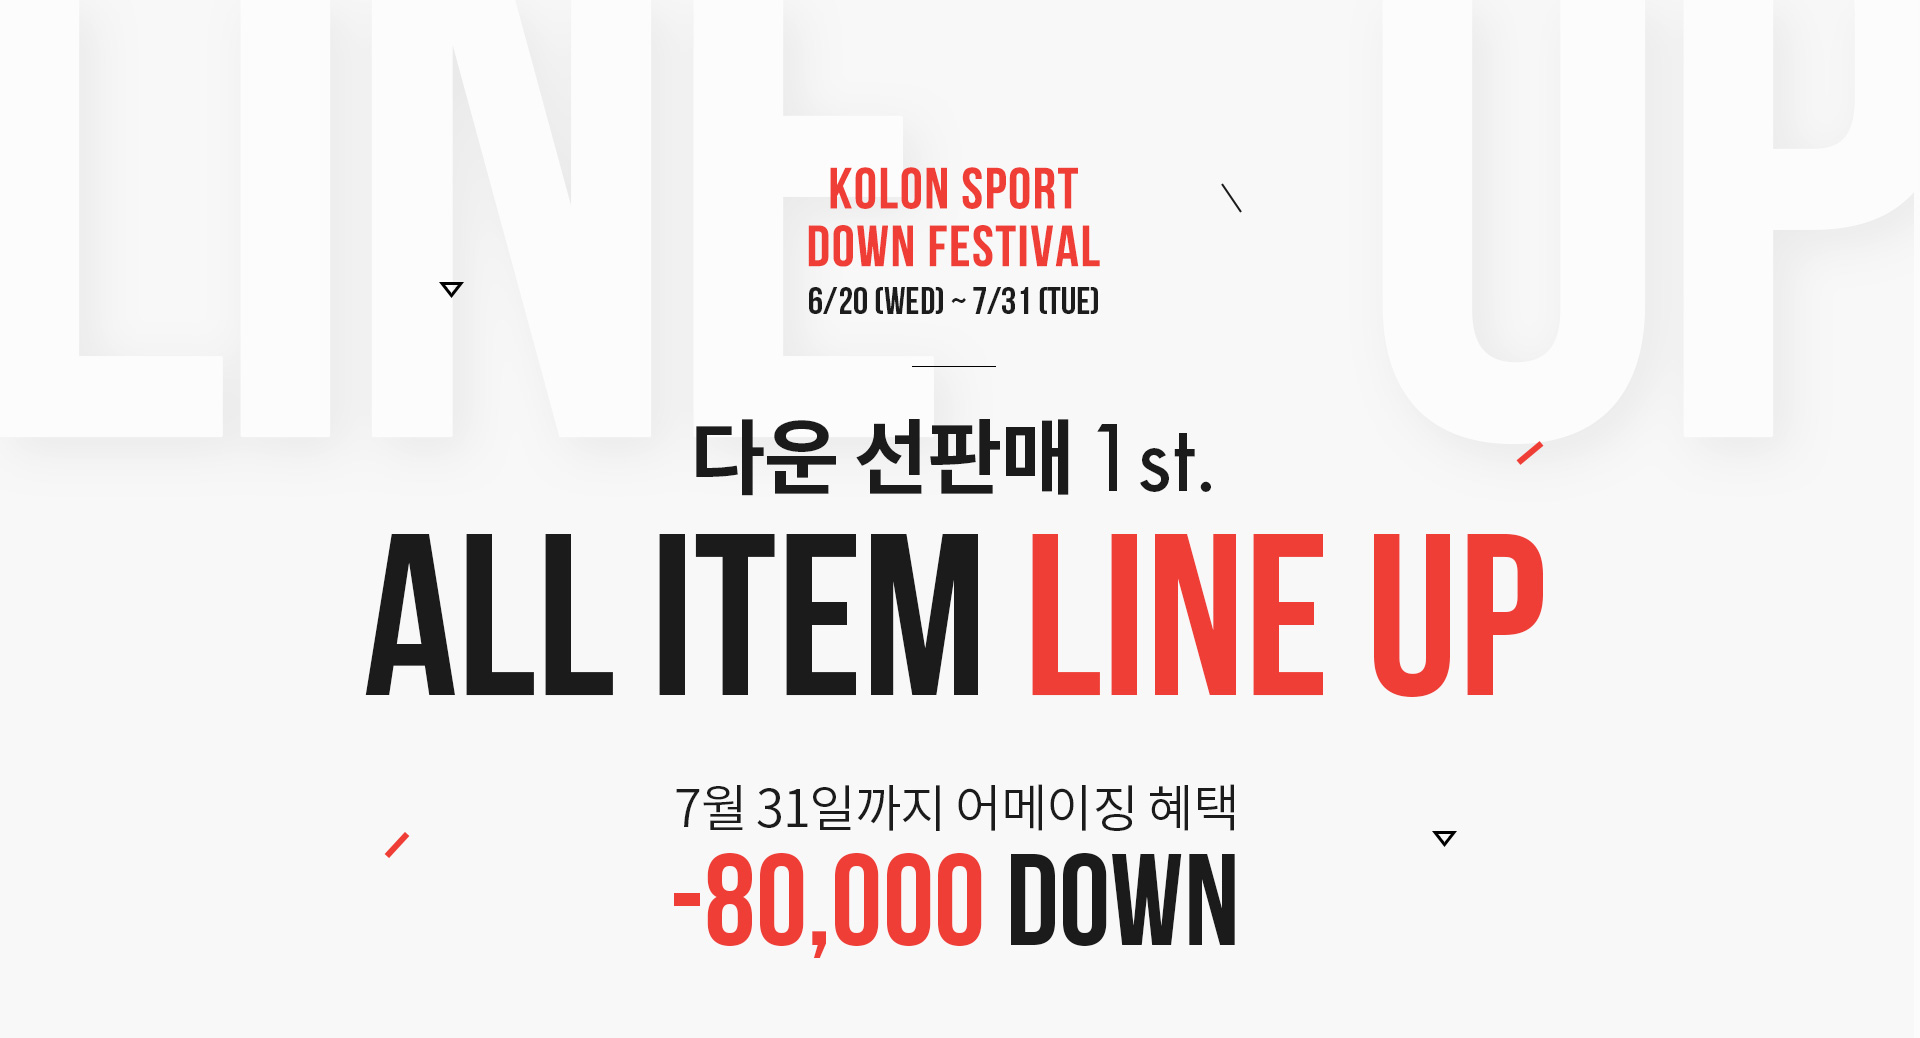 KOLON SPORT DOWN FESTIVAL 6/20(WED) ~ 7/31(TUE) 다운 선판매 1st ALL ITEM LINE UP 7월 31일까지 어메이징 혜택 -80,000 DOWN